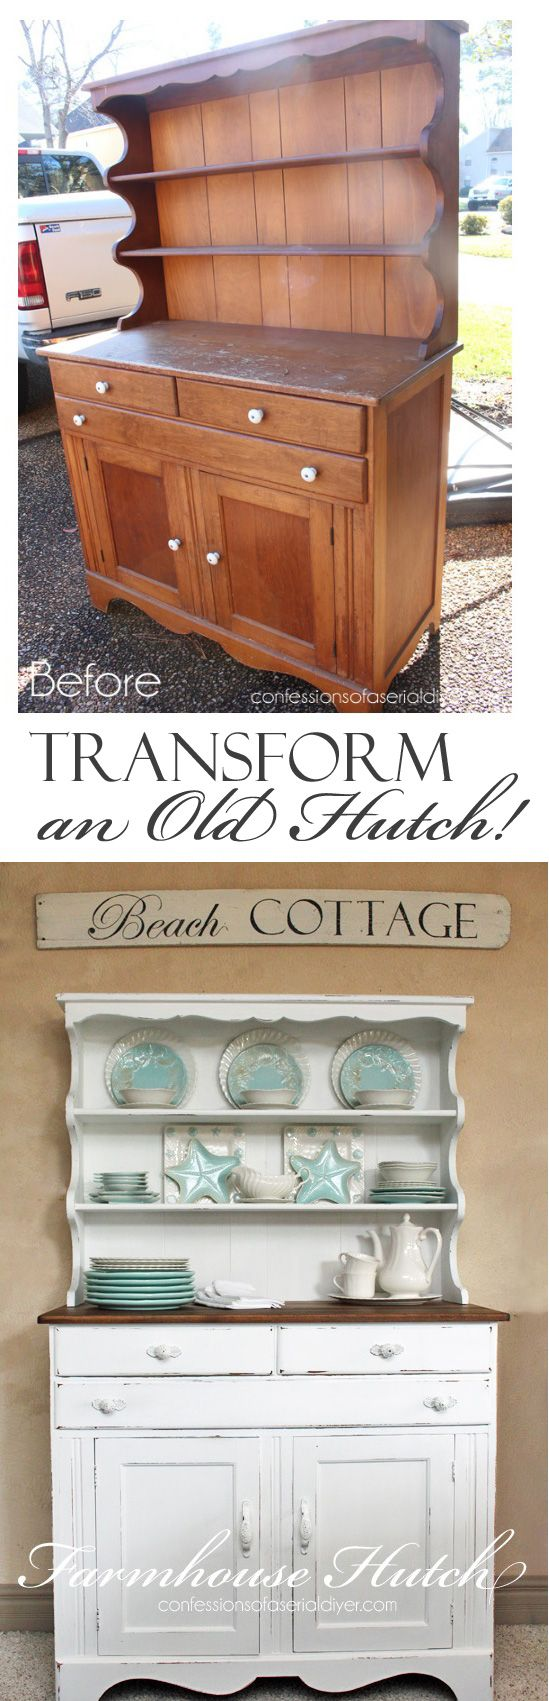 diy furniture refinishing projects. farmhouse hutch makeover from confessions of a serial doityourselfer refinished furniturefurniture diy furniture refinishing projects